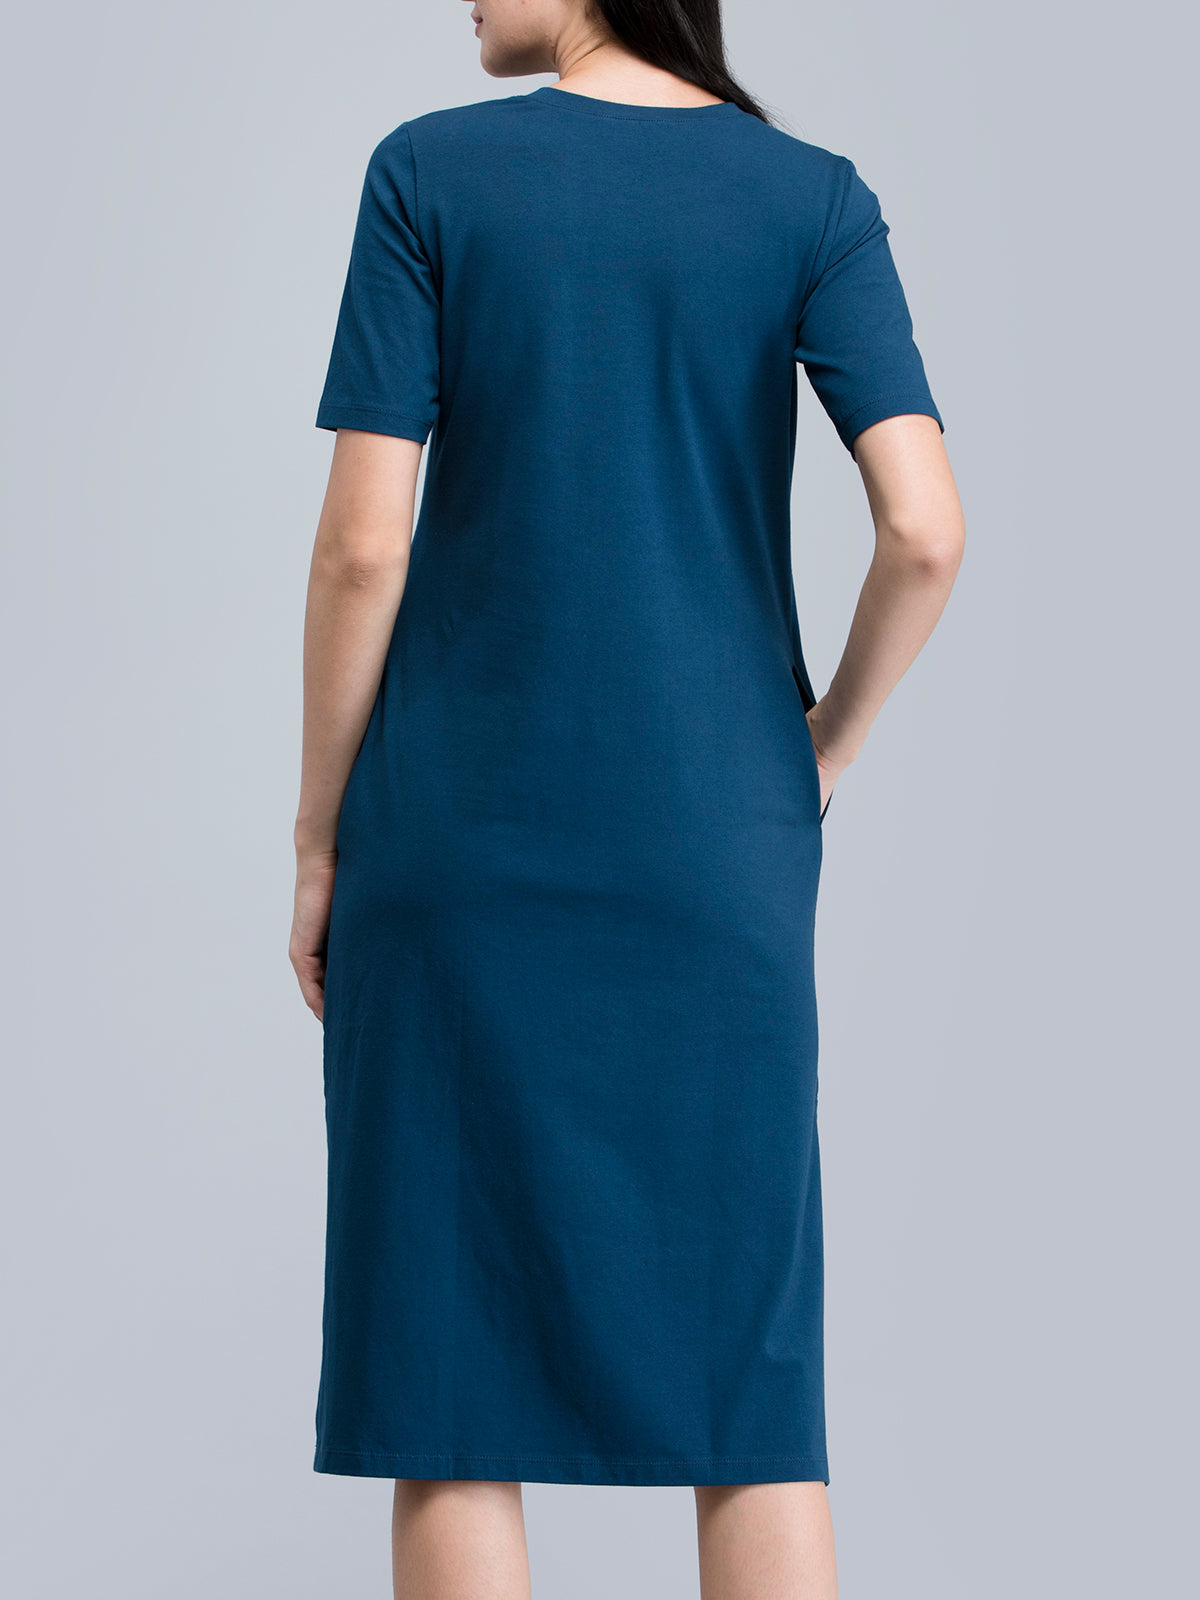 Cotton Round Neck Knitted Midi Dress - Blue